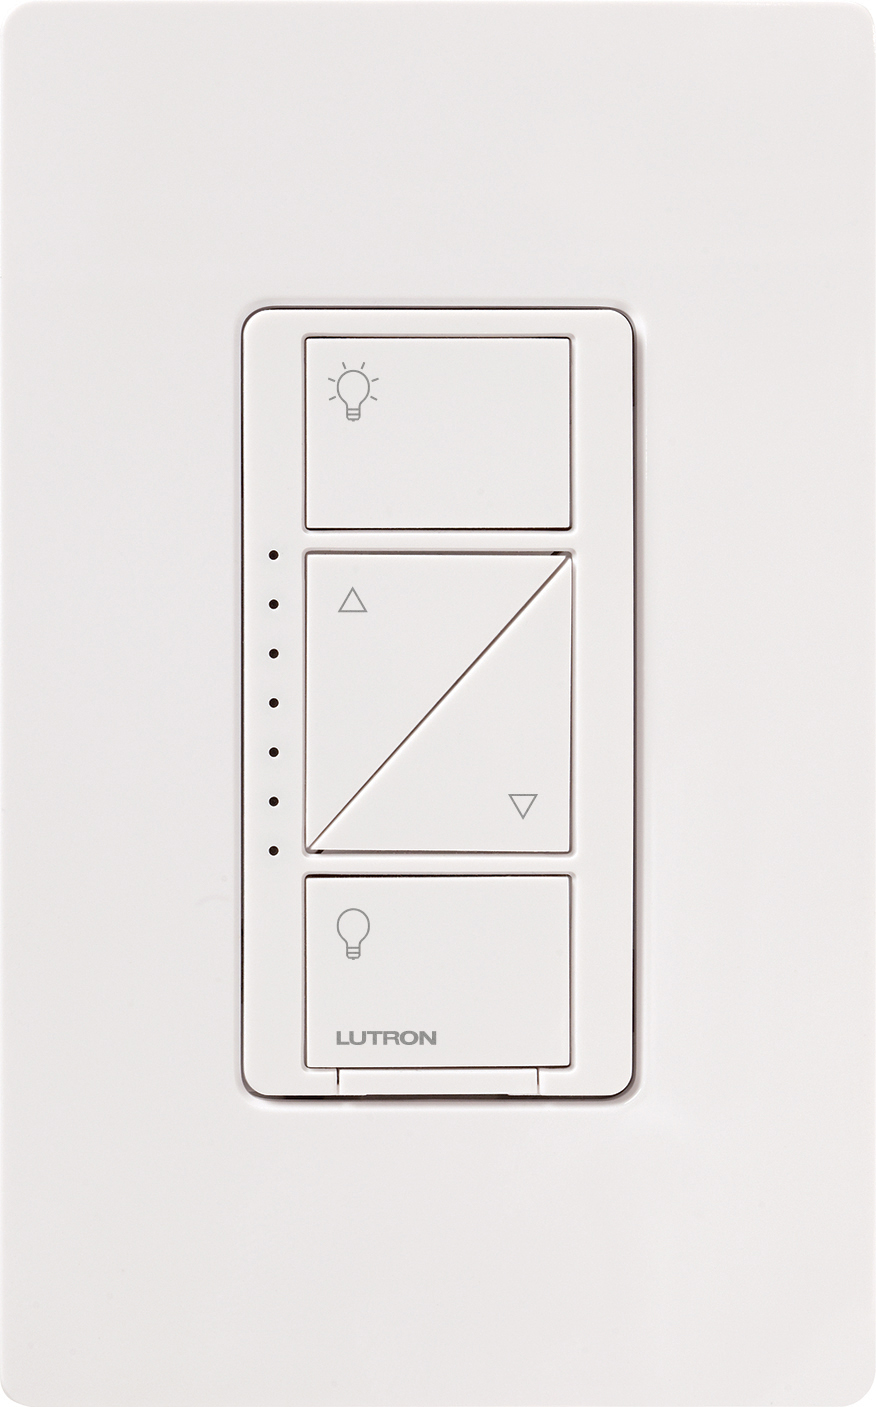 Lutron caseta wireless dimmer switch with 4 buttons shown up close